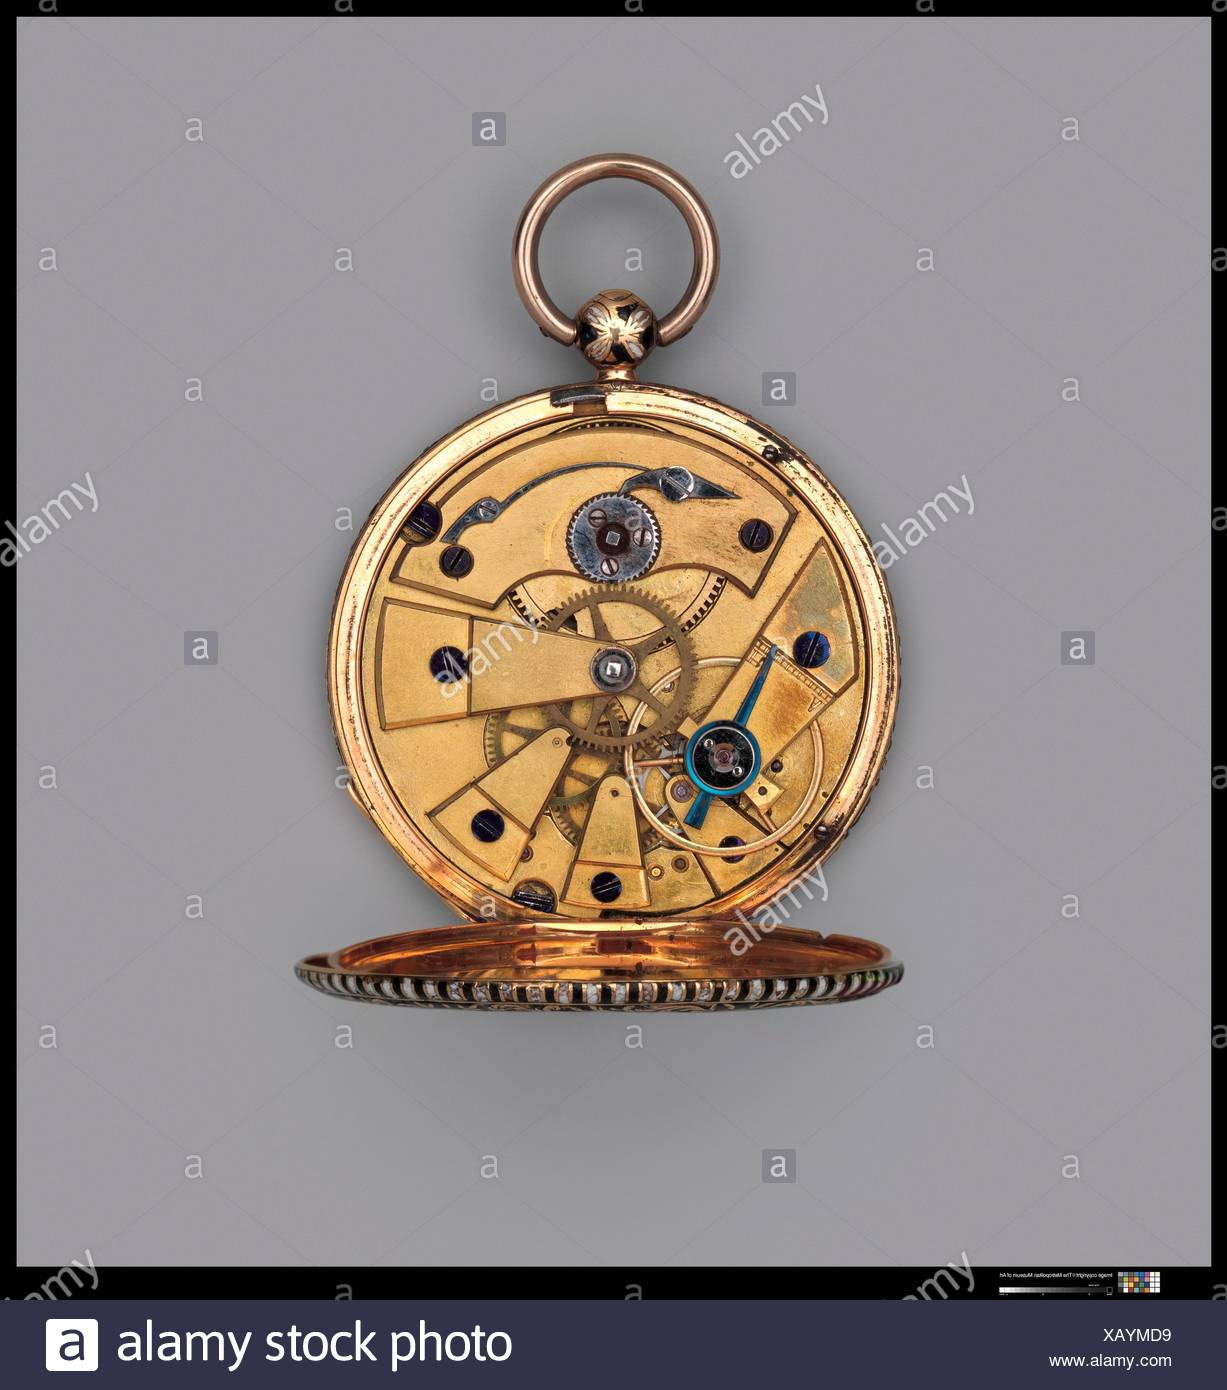 Watch. Maker: Watchmaker: Jacques Lépine (1814-1825); Date: 19th century; Culture: French, Paris; Medium: Gold; Dimensions: Diam. 1-5/8 in. (4.1 cm); - Stock Image